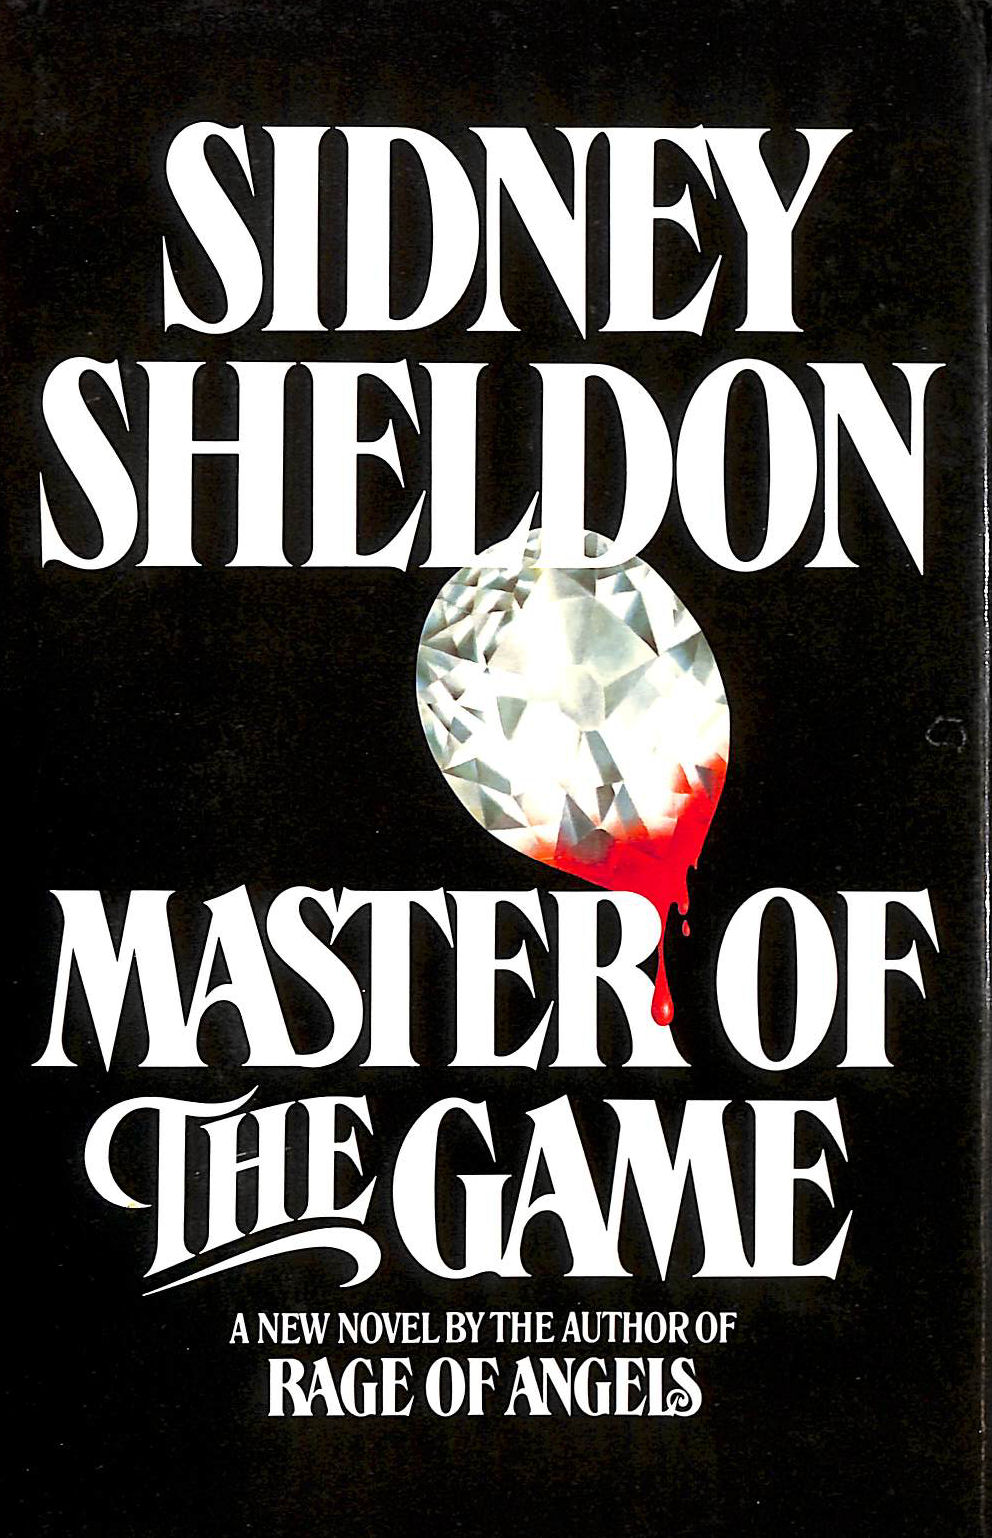 Image for Master of the Game